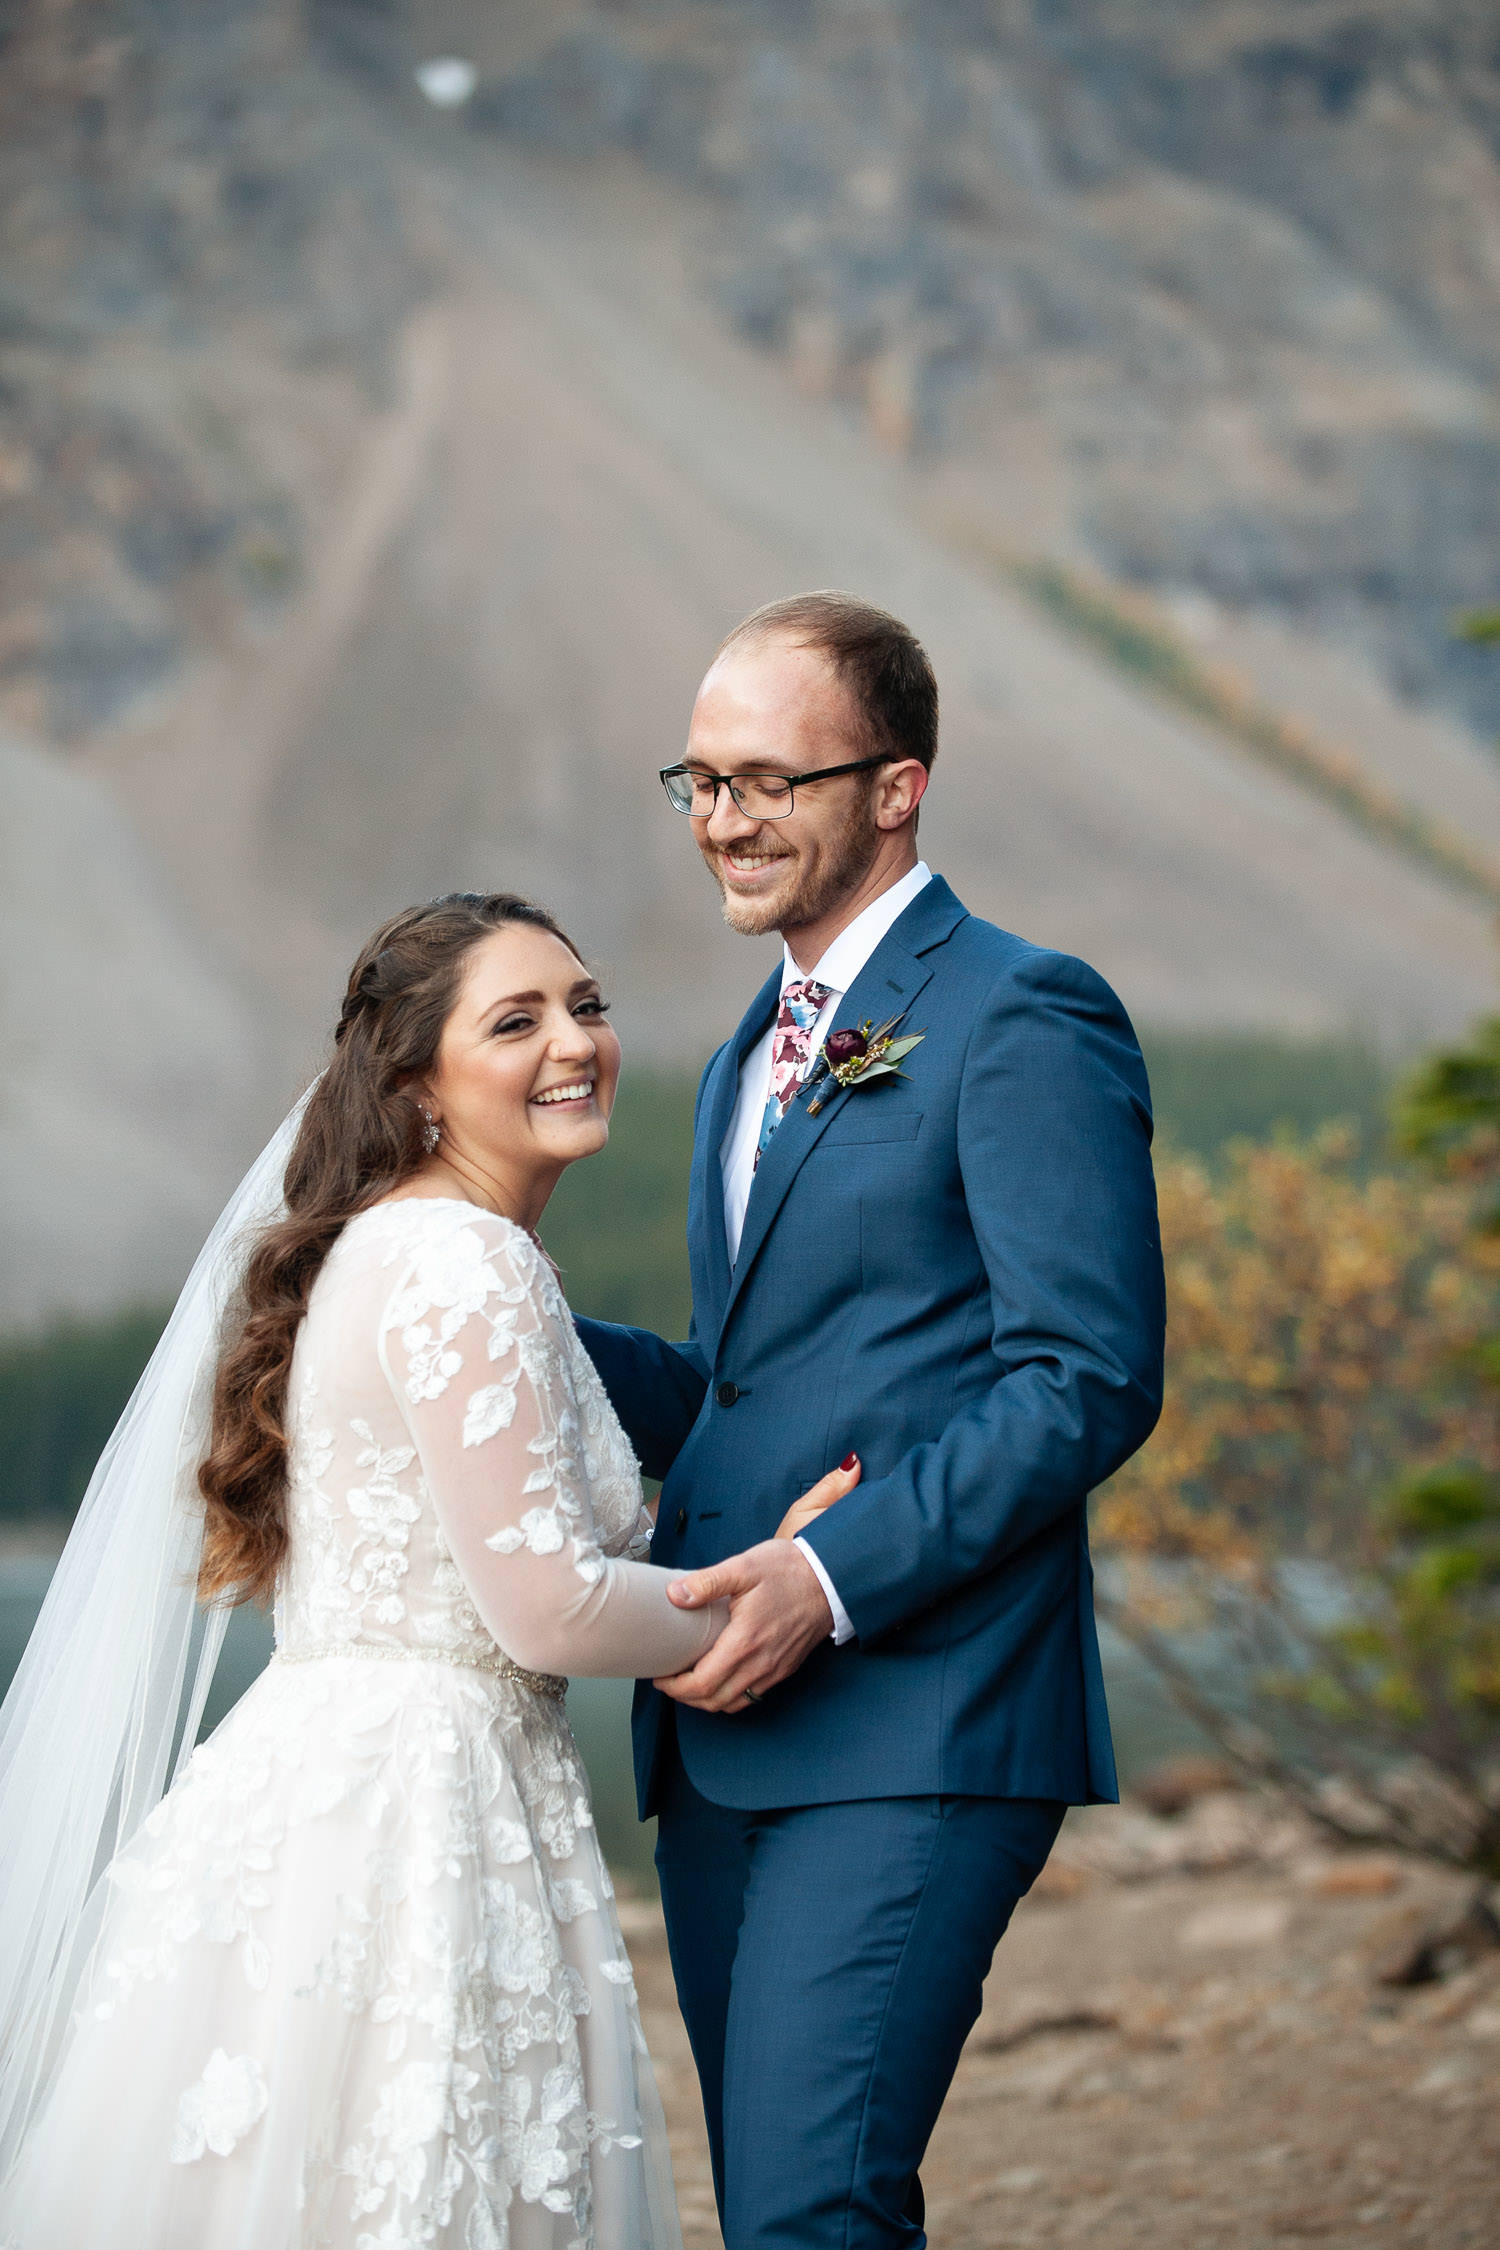 Happy bride and groom at their Moraine Lake elopement captured by Tara Whittaker Photography